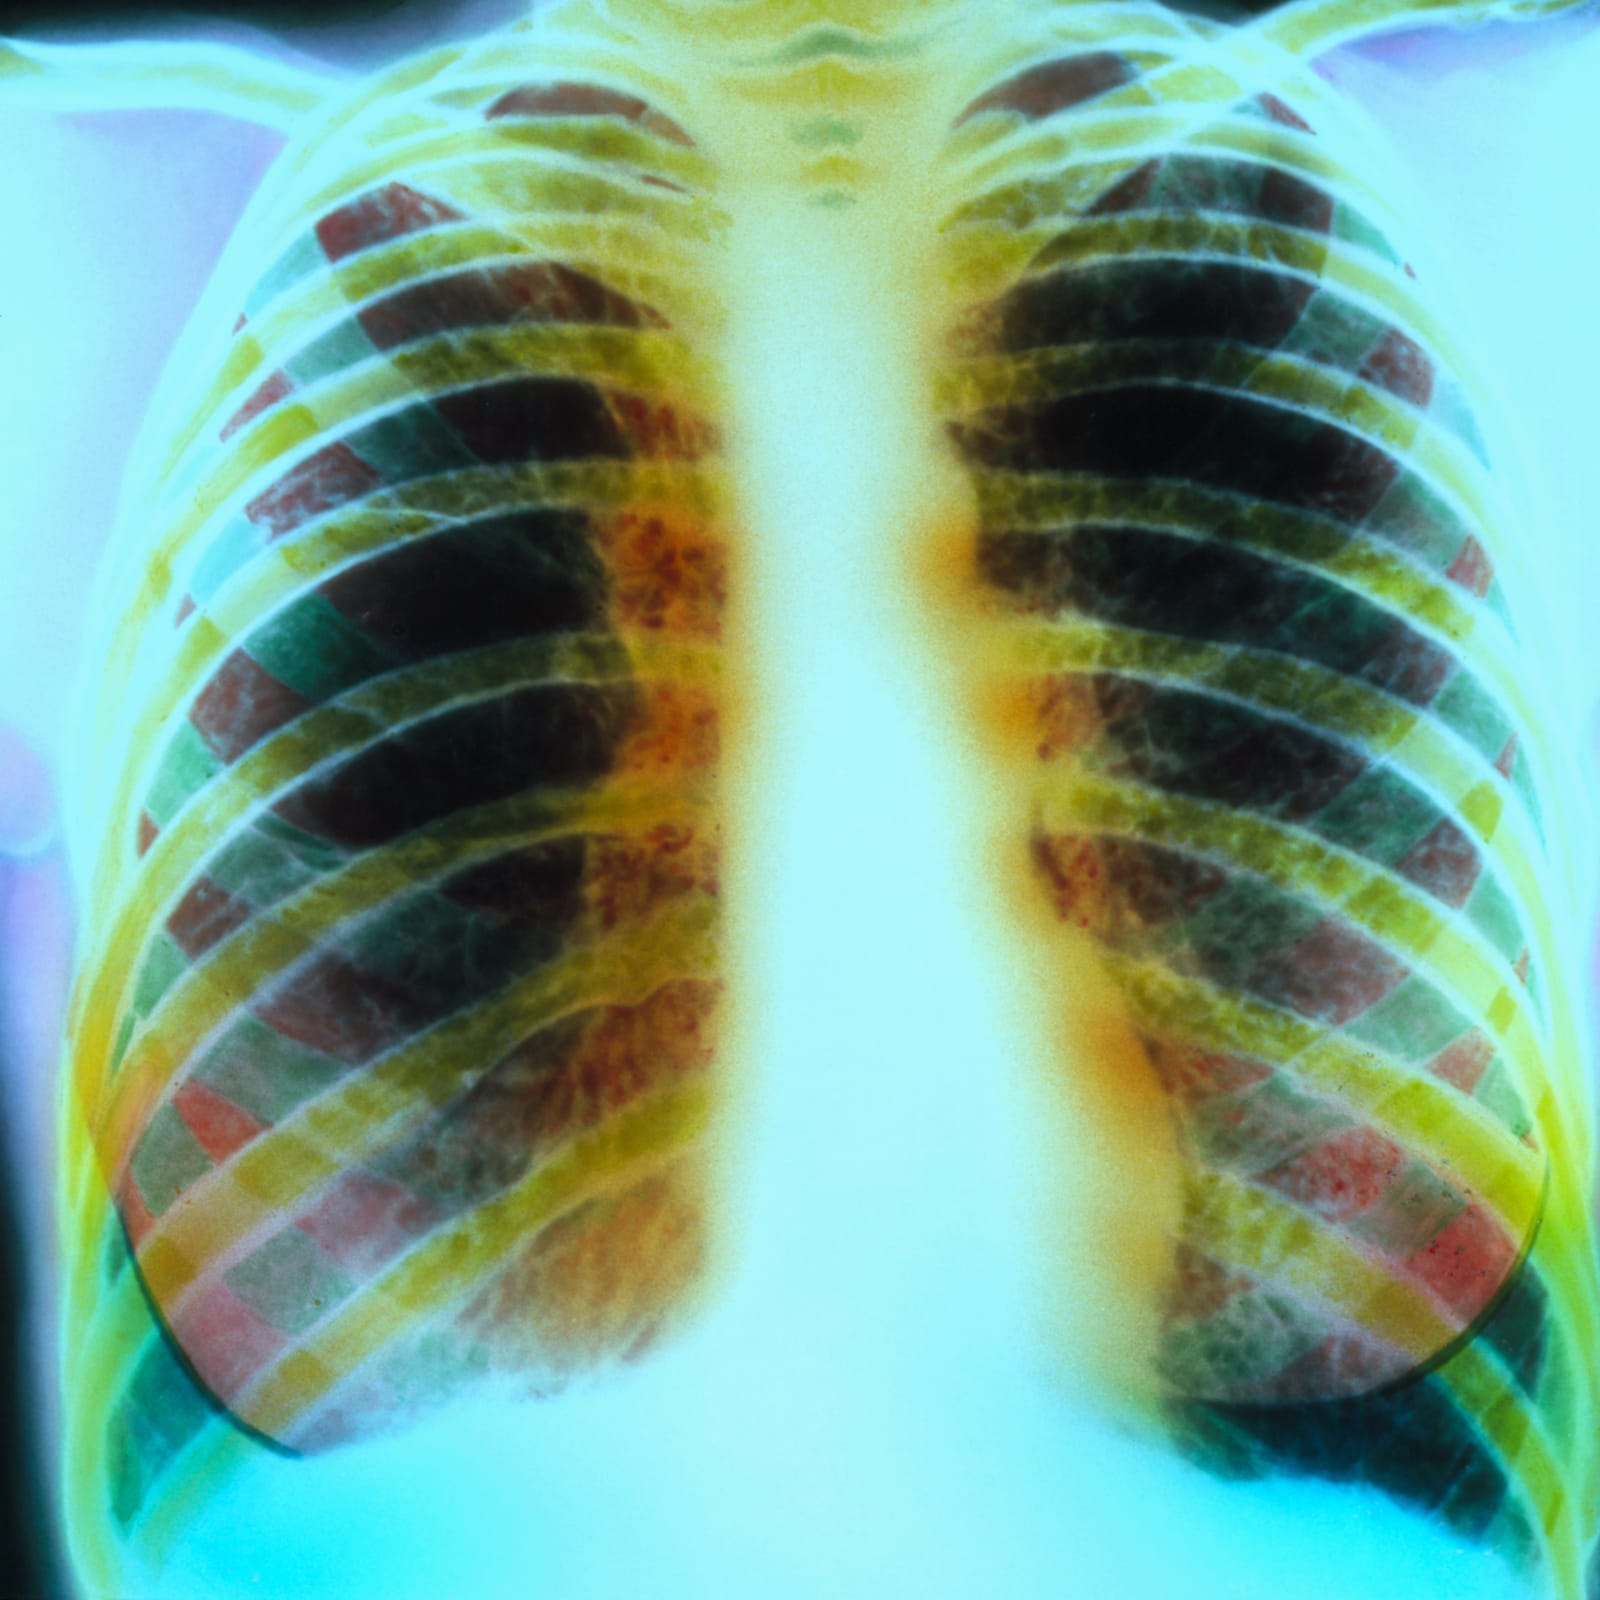 Chest X-ray of lungs with cystic fibrosis